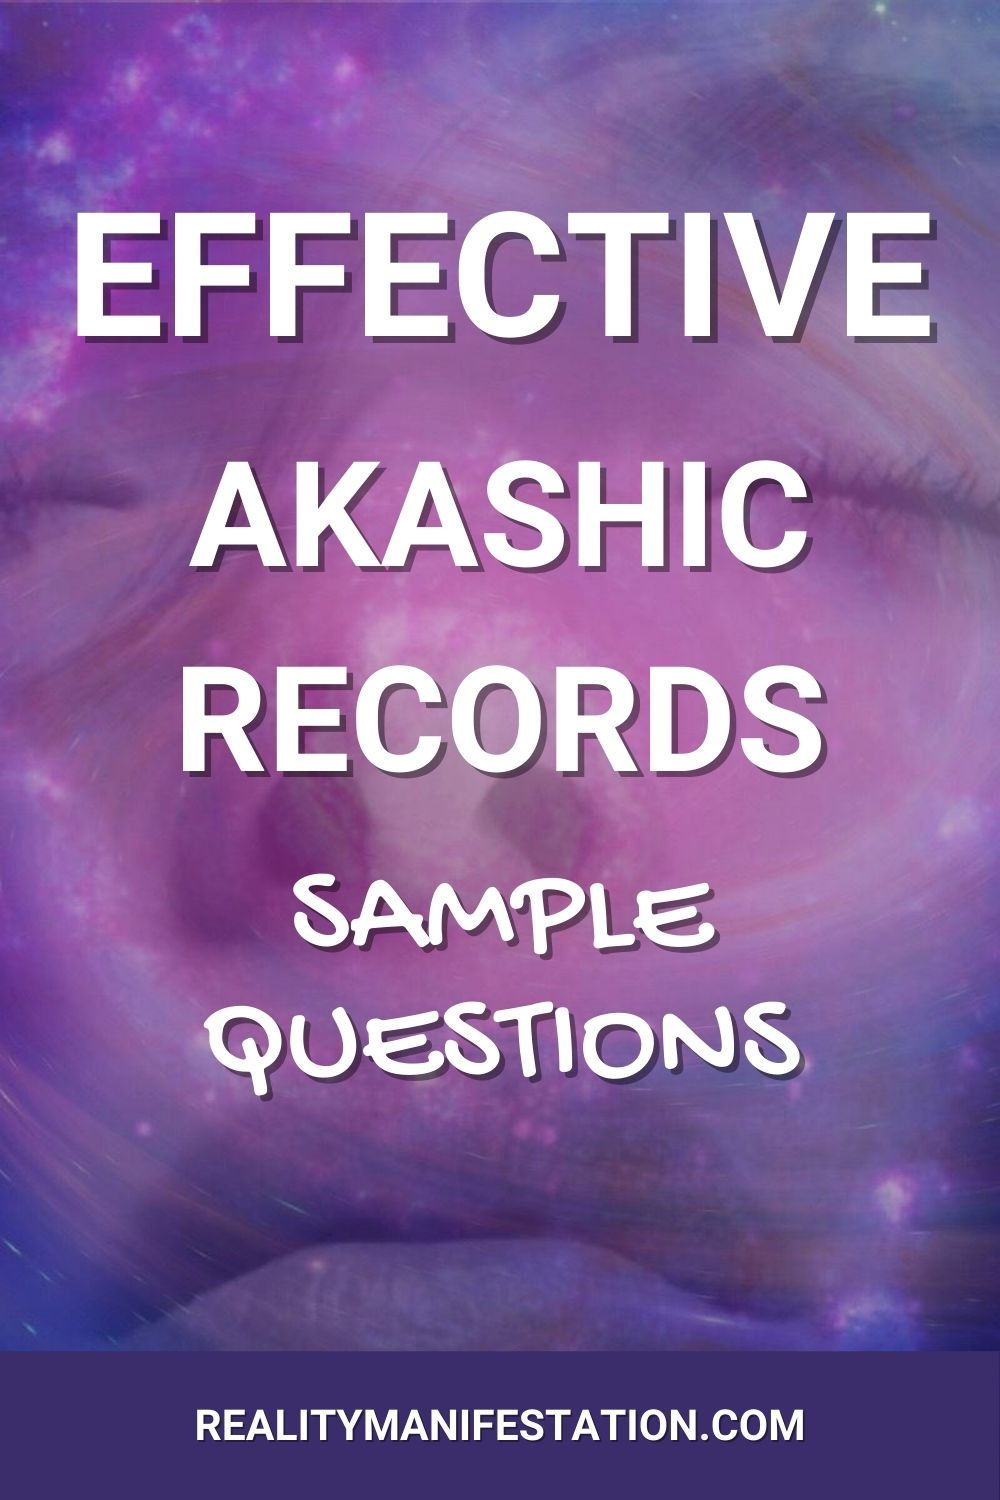 Effective Akashic Records Sample Questions